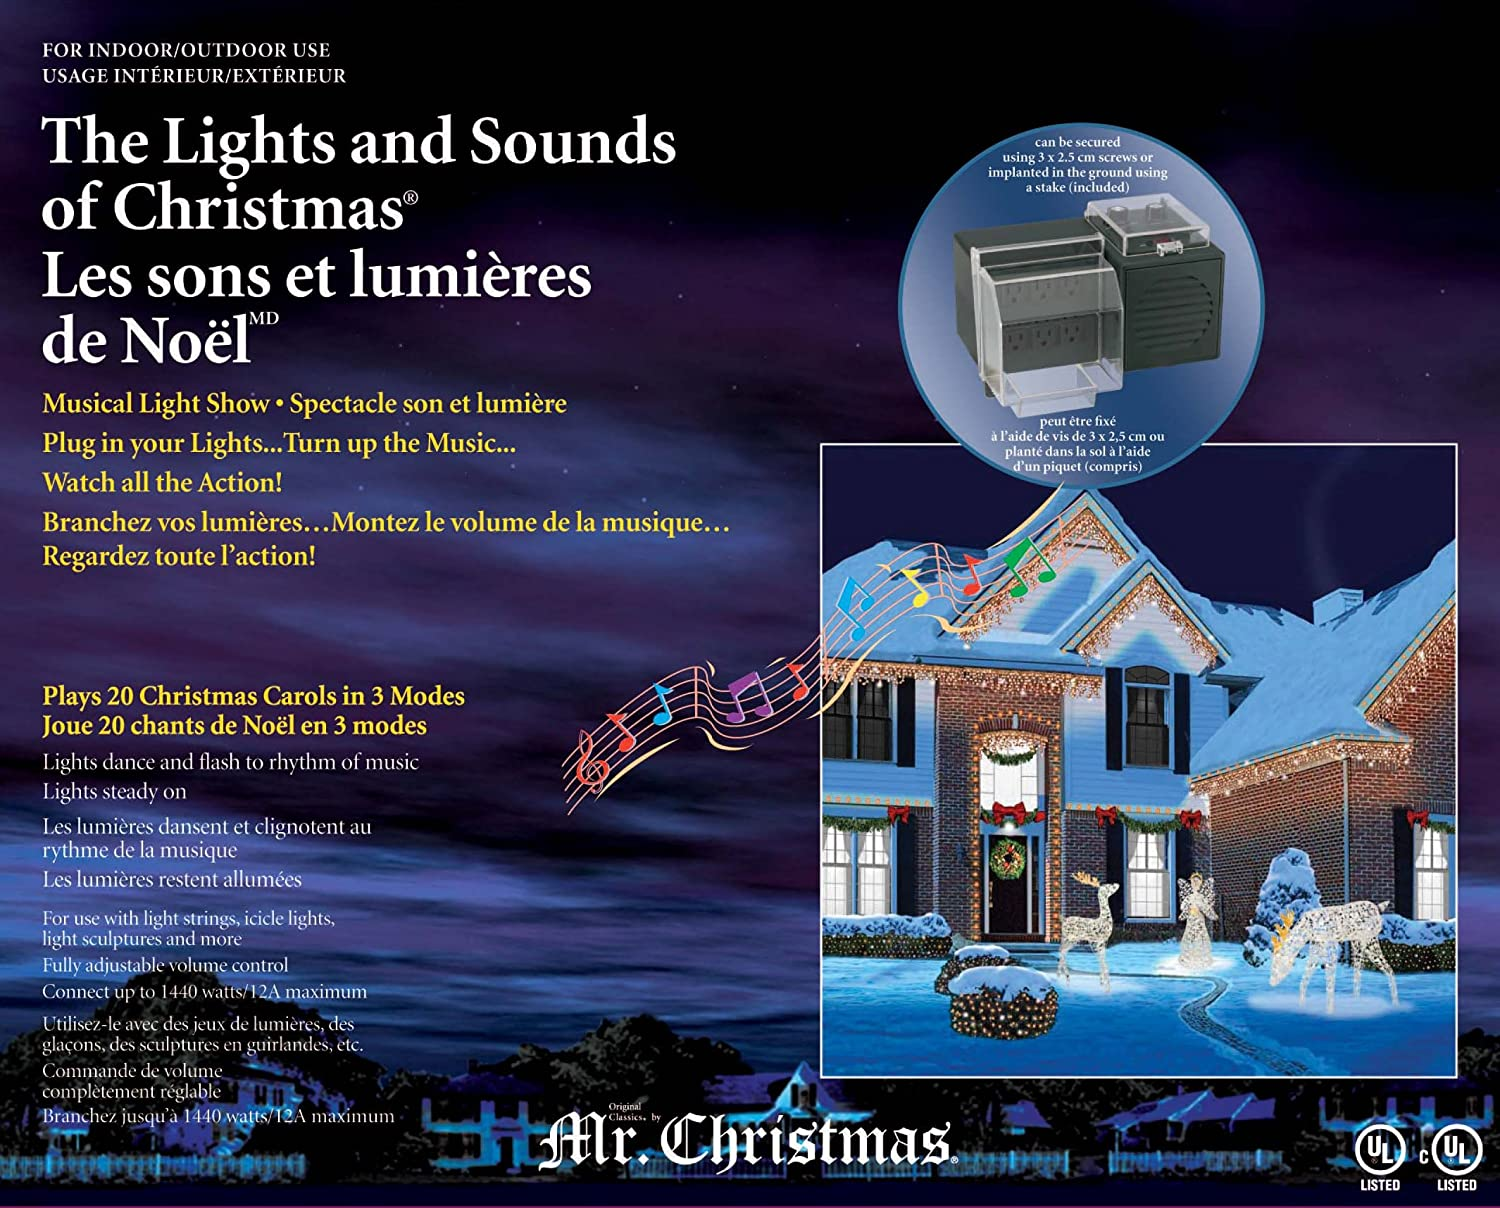 amazoncom mr christmas lights and sounds of christmas outdoor home kitchen - New Outdoor Christmas Lights